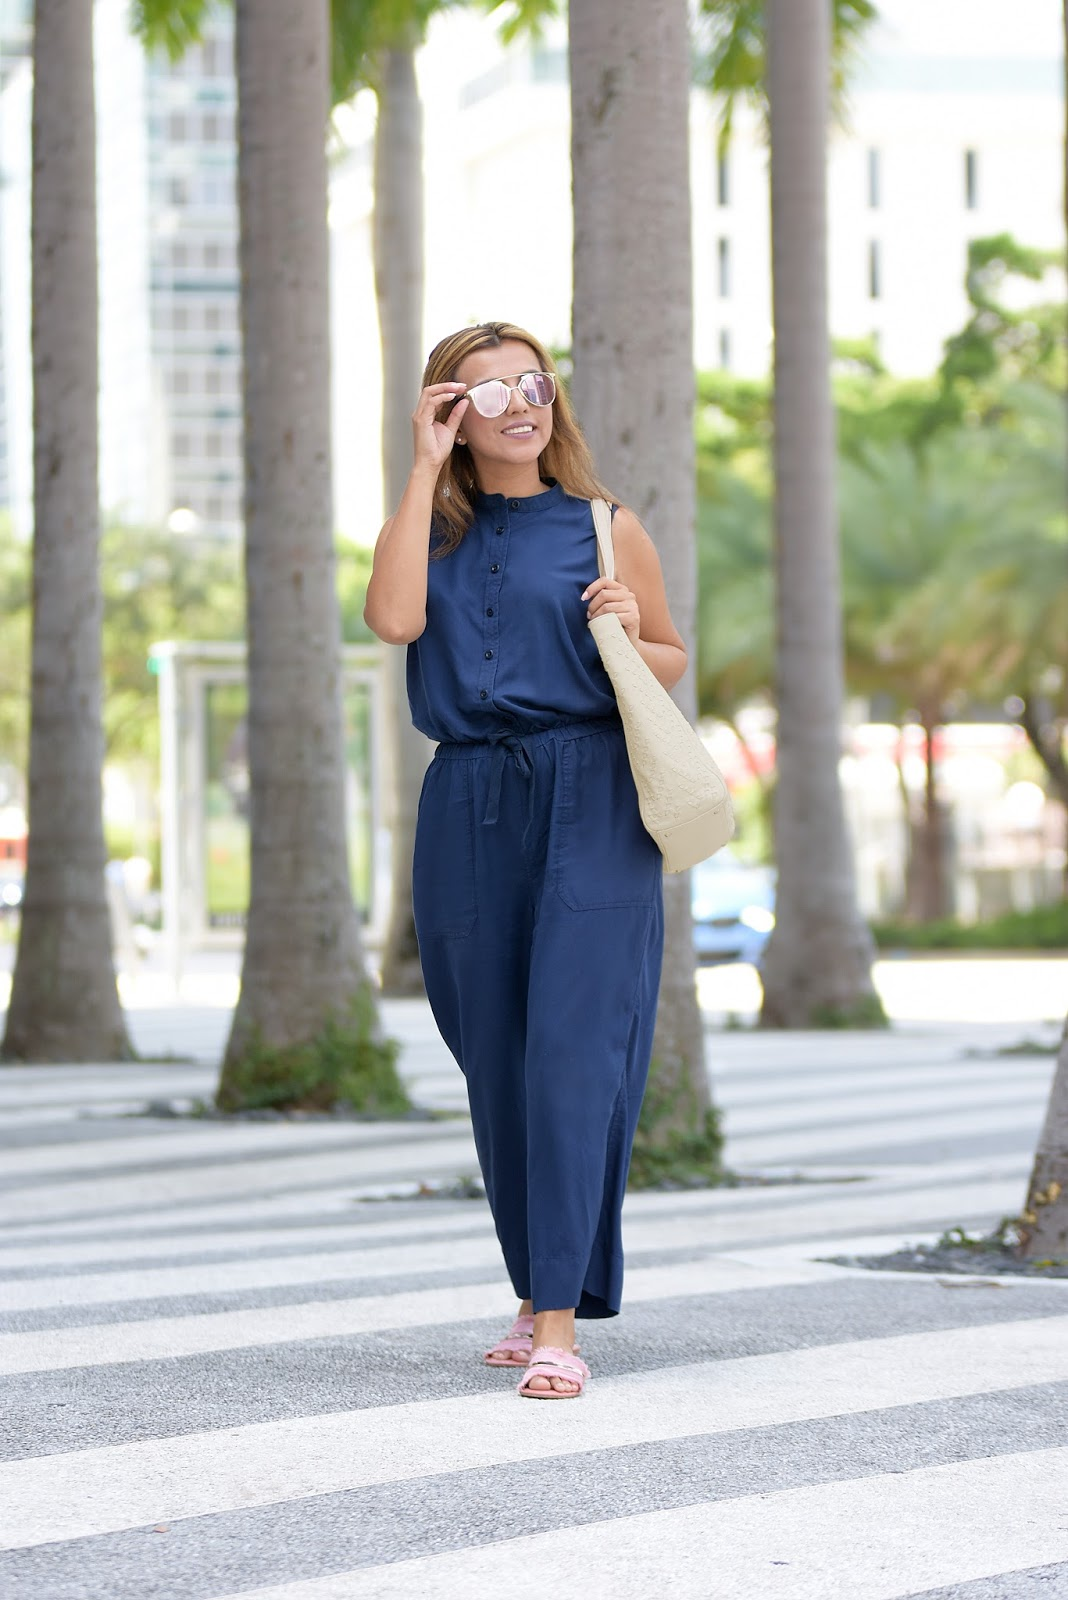 Easy To Stay Stylish Even In The Heat by Mari Estilo ft. Lauren Ralph Lauren